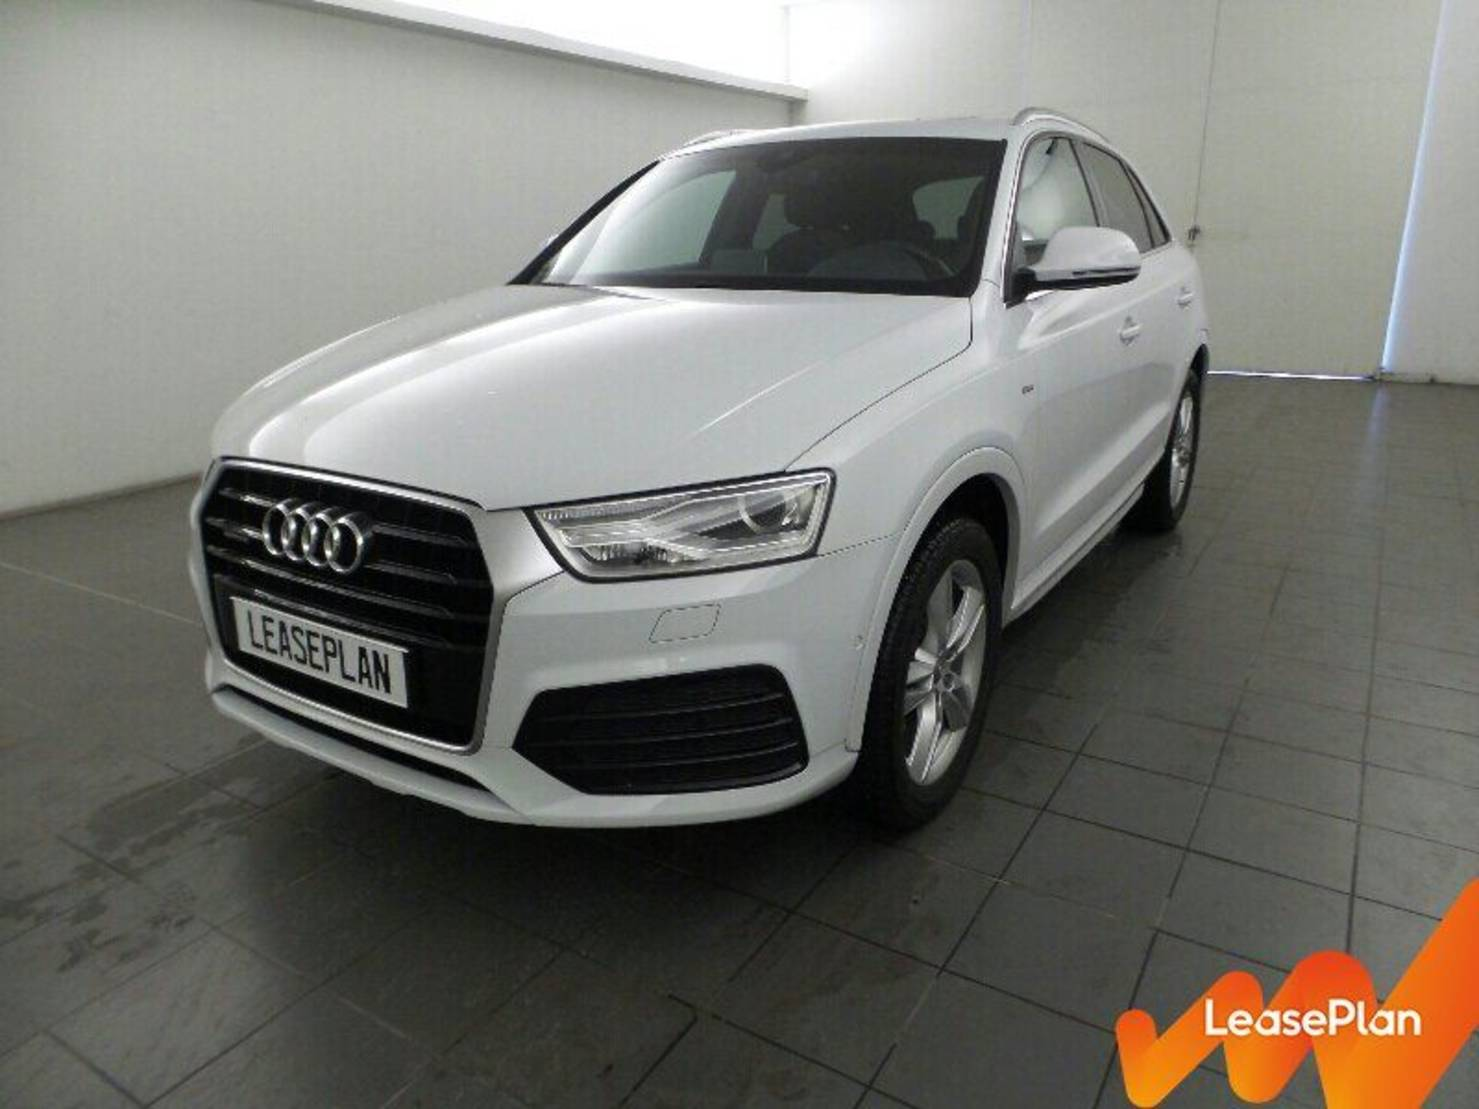 Audi Q3 2.0 TDI 150 ch S tronic 7 Quattro, Ambition Luxe detail1